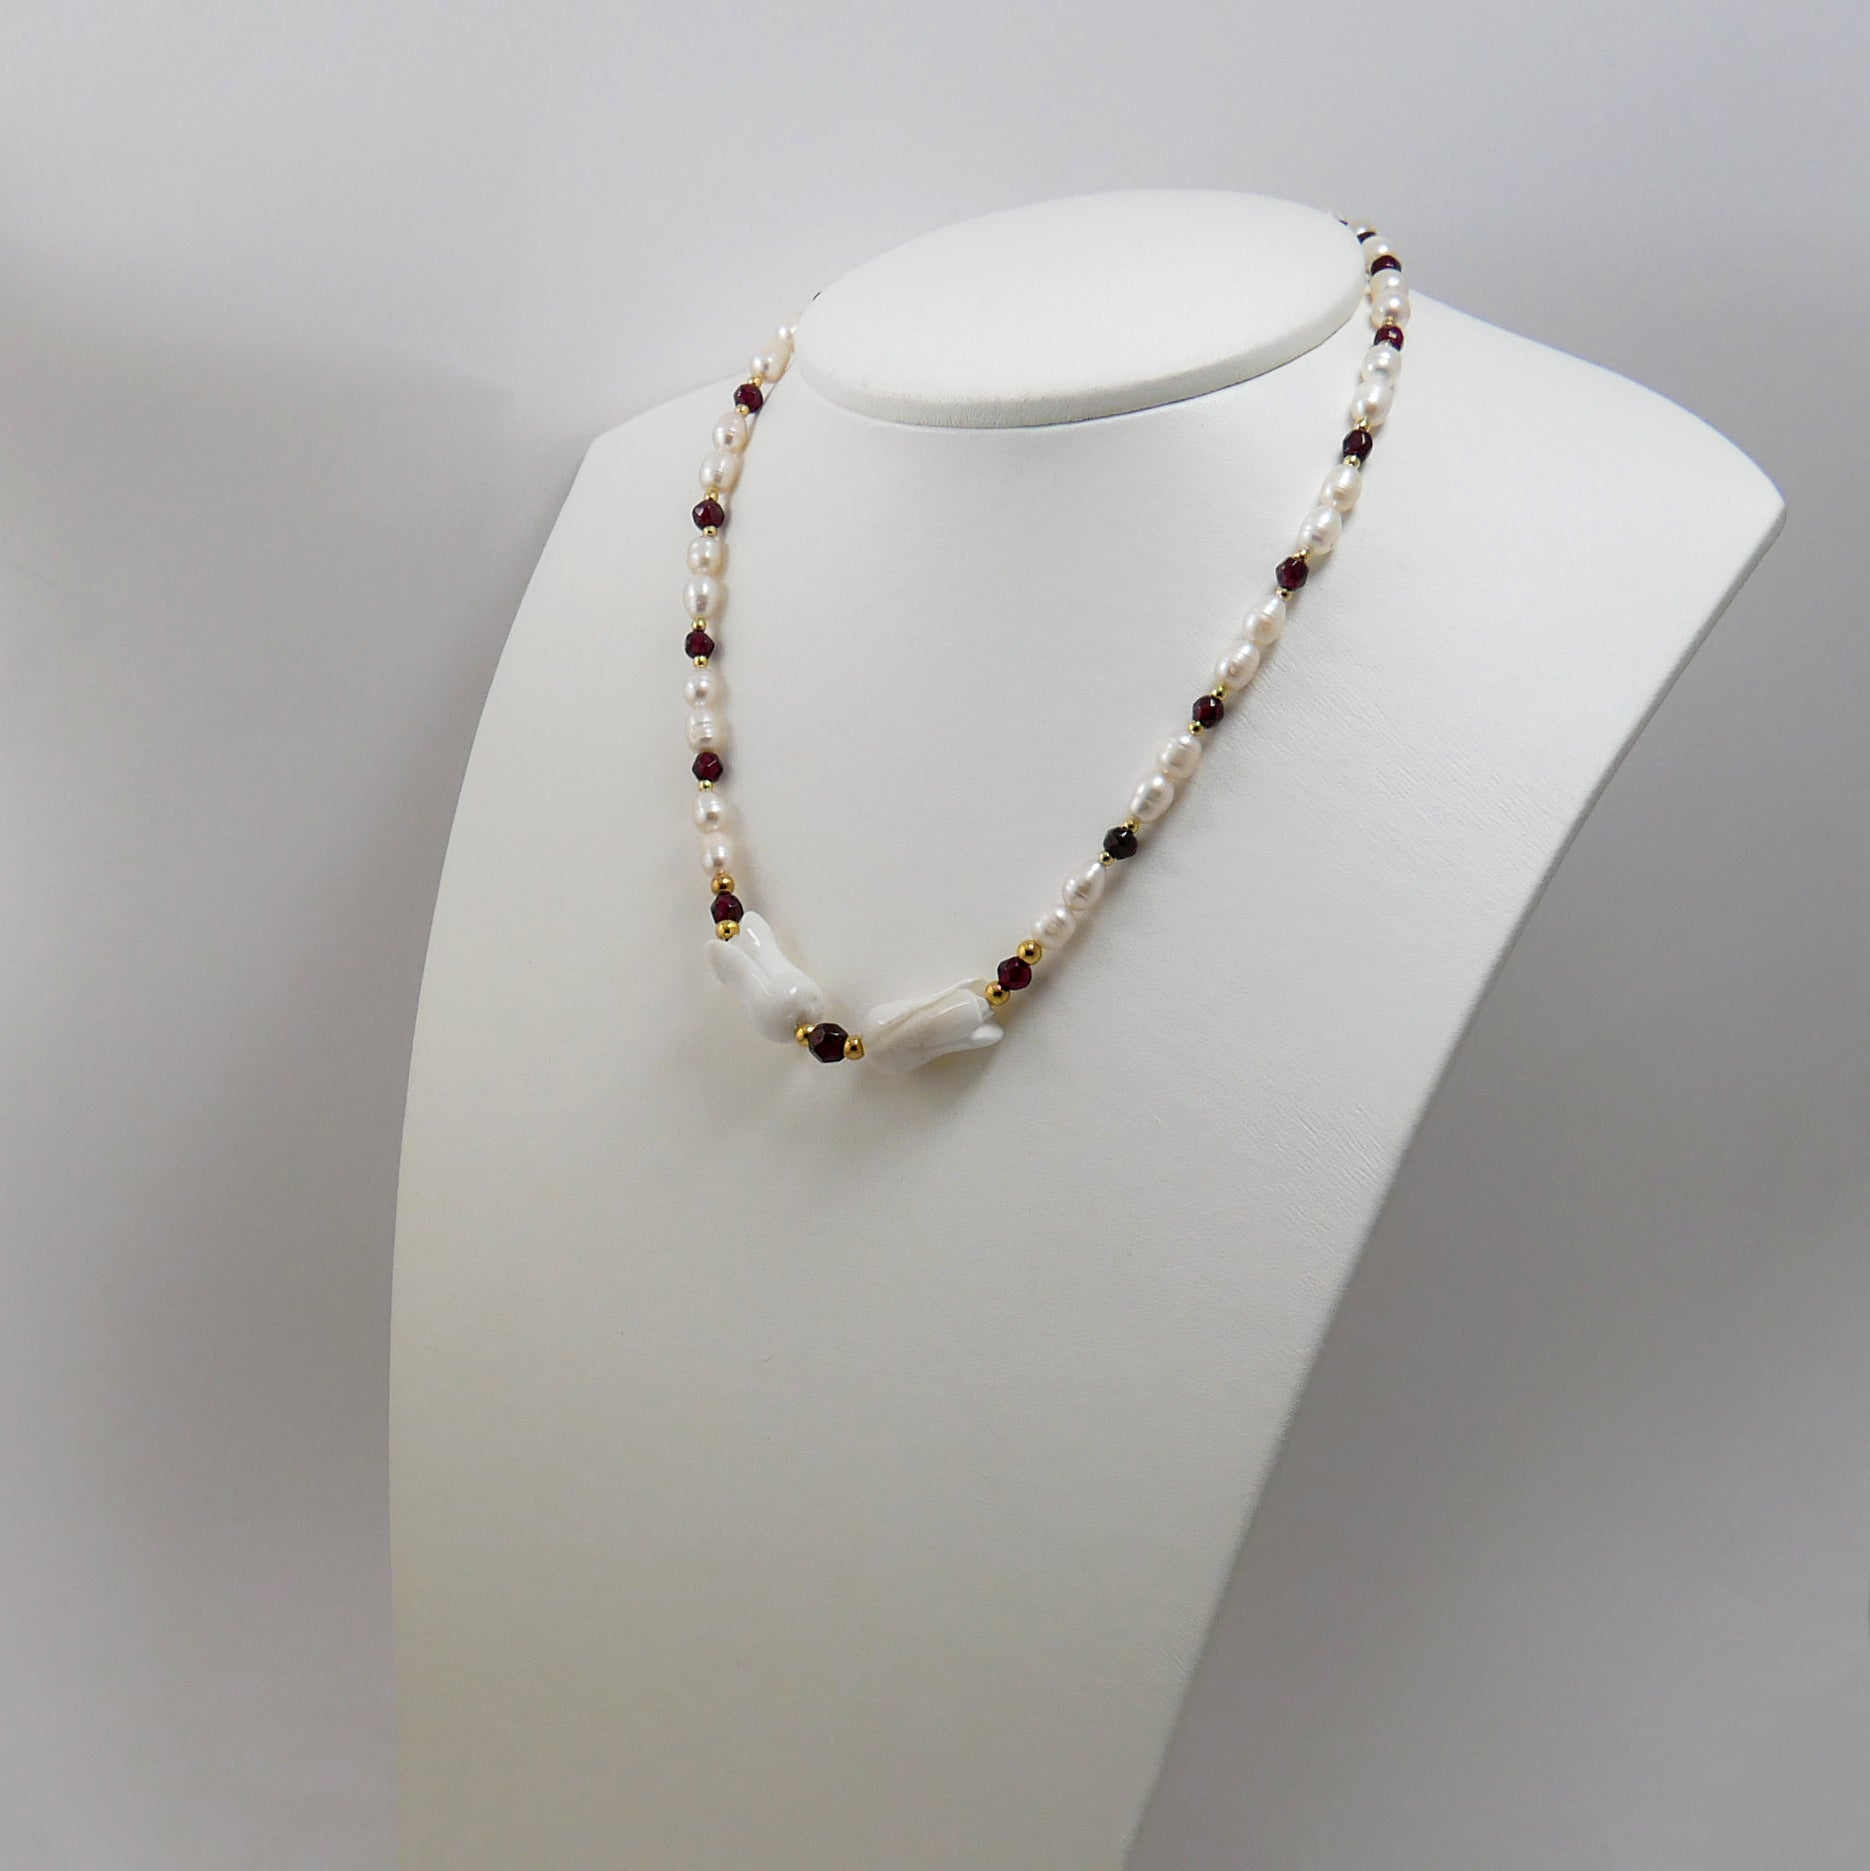 Pearls, Garnets, Mother of Pearl & Gold Plated Silver Necklace - Katerina Roukouna